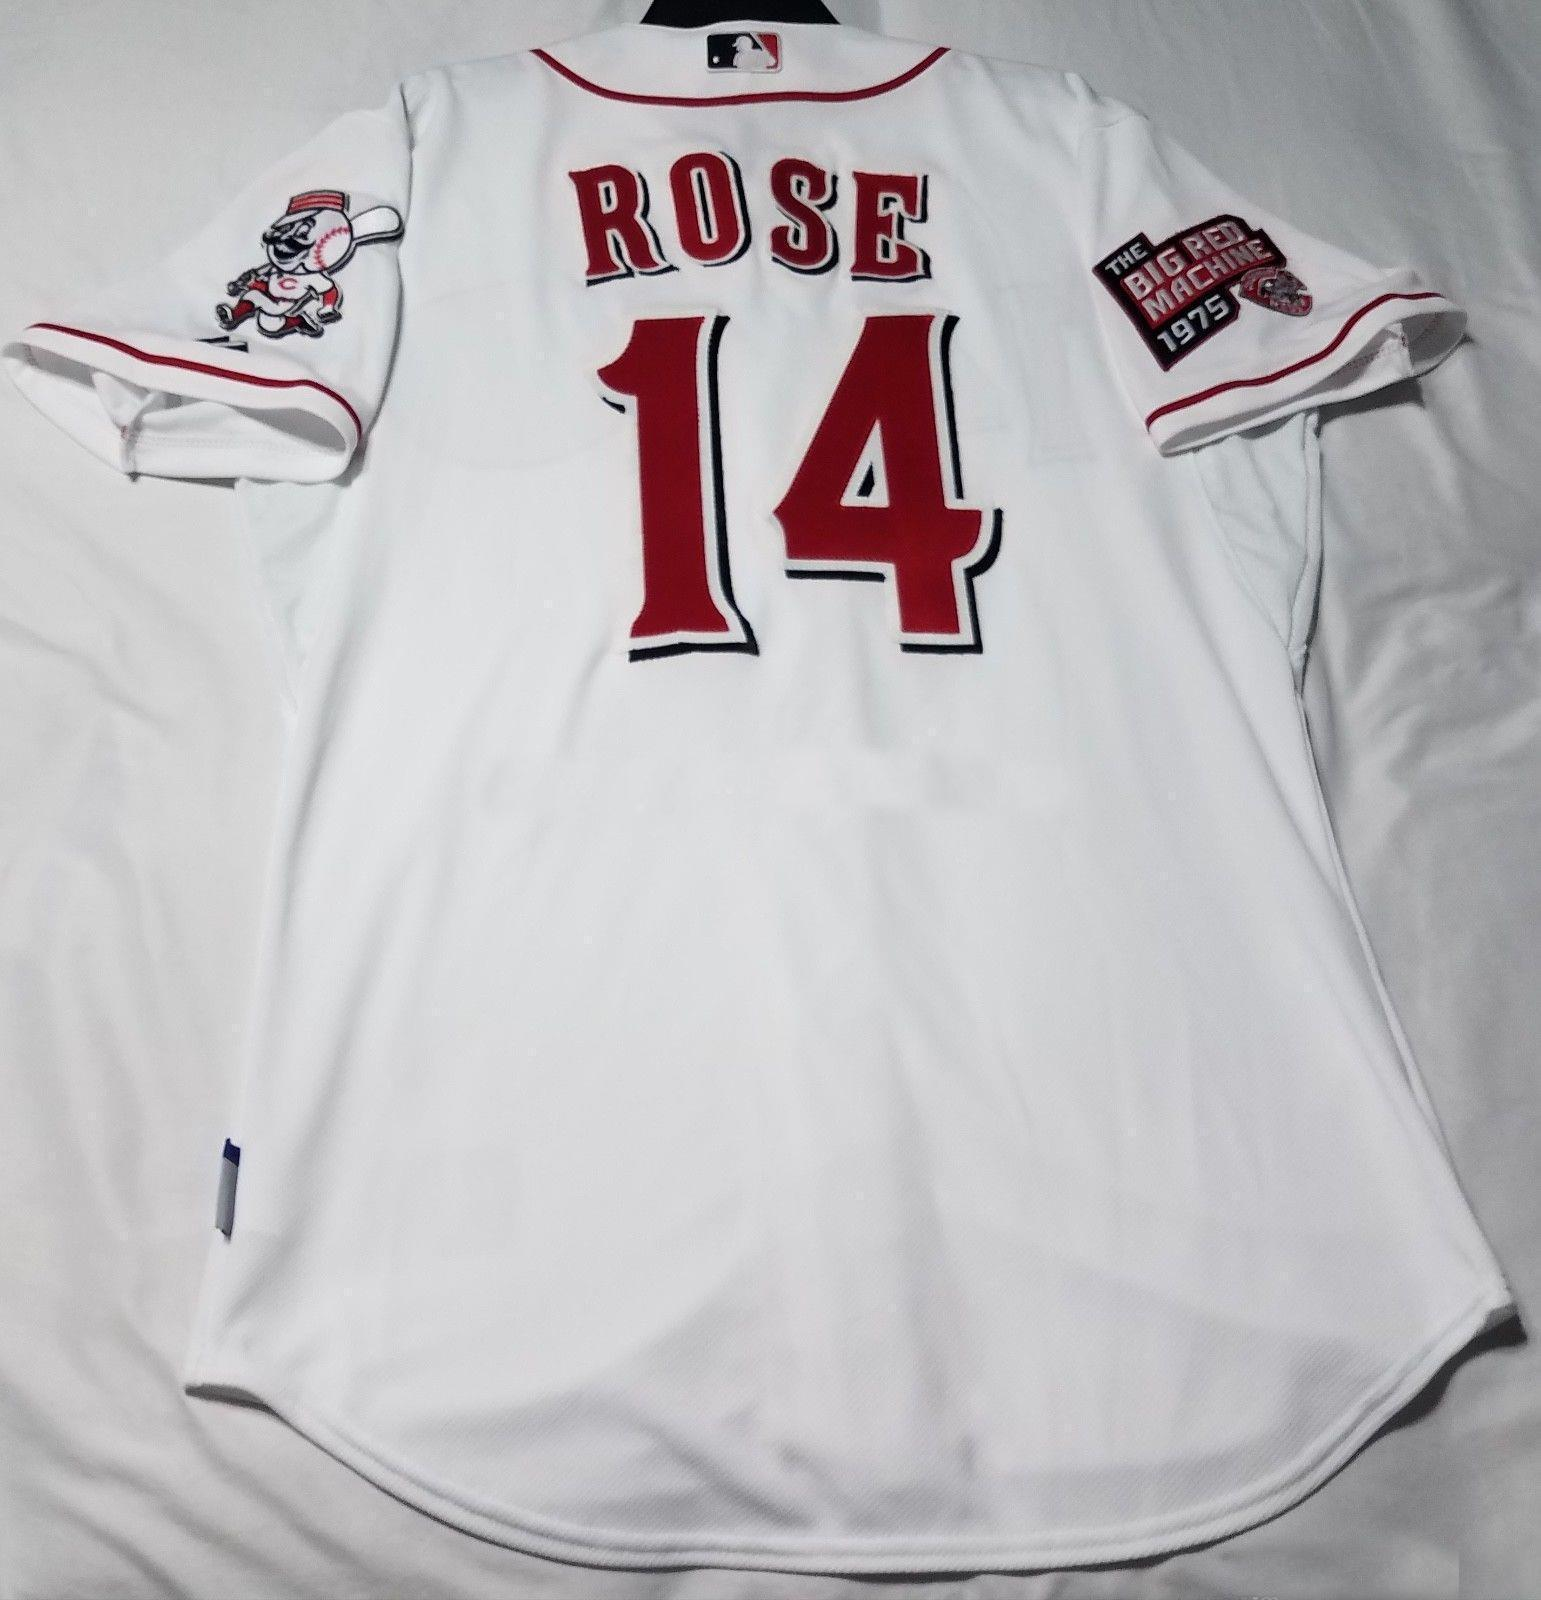 b483e5384b1 Cheap Wholesale CINCINNATI PETER ROSE COOL BASE Jersey Stitched Customize  Any Number Name MEN WOMEN YOUTH Vintage Jersey Wholesale Cheap Peter Ros  Online ...